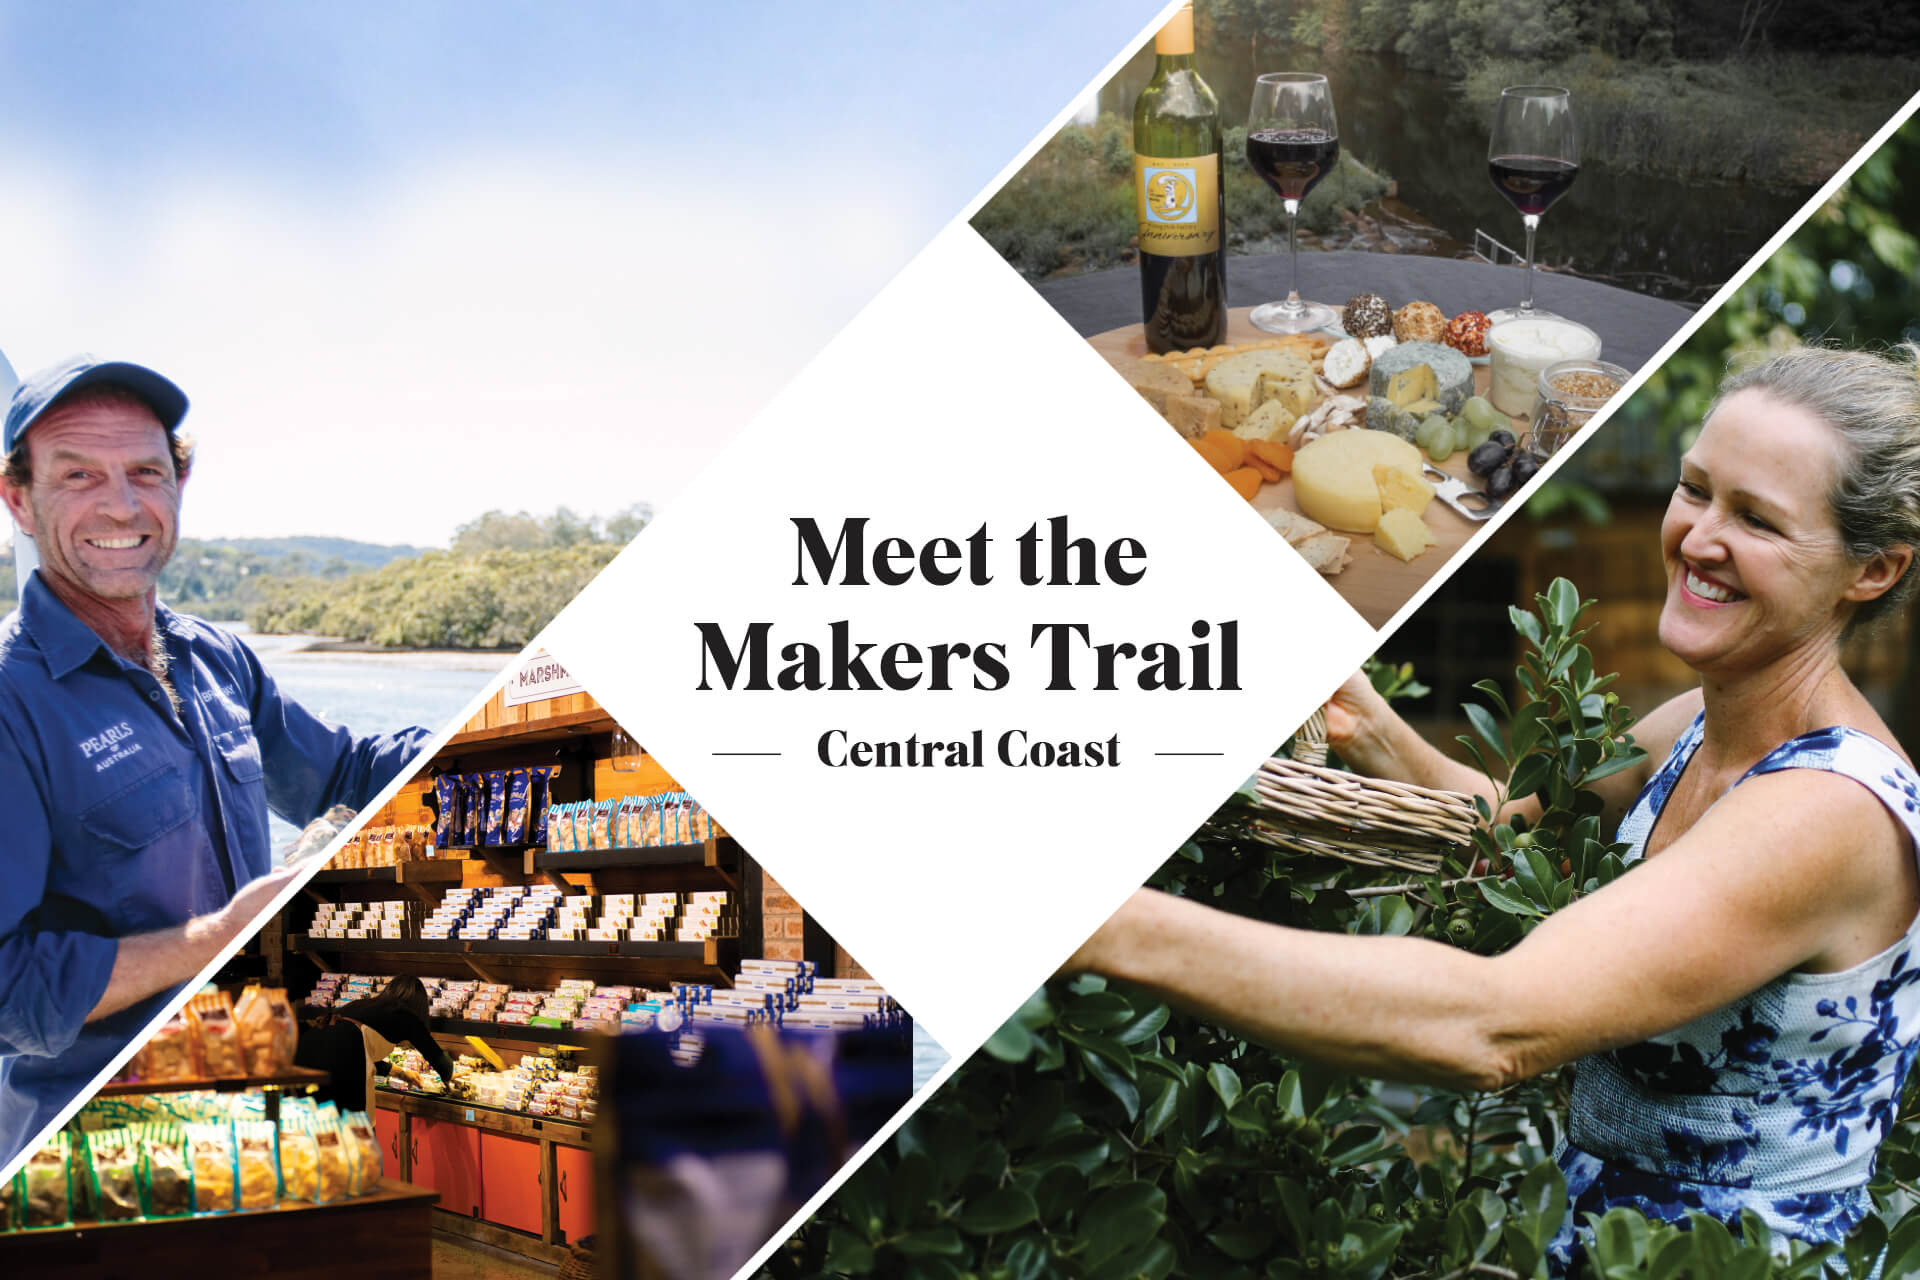 meet the makers trail central coast